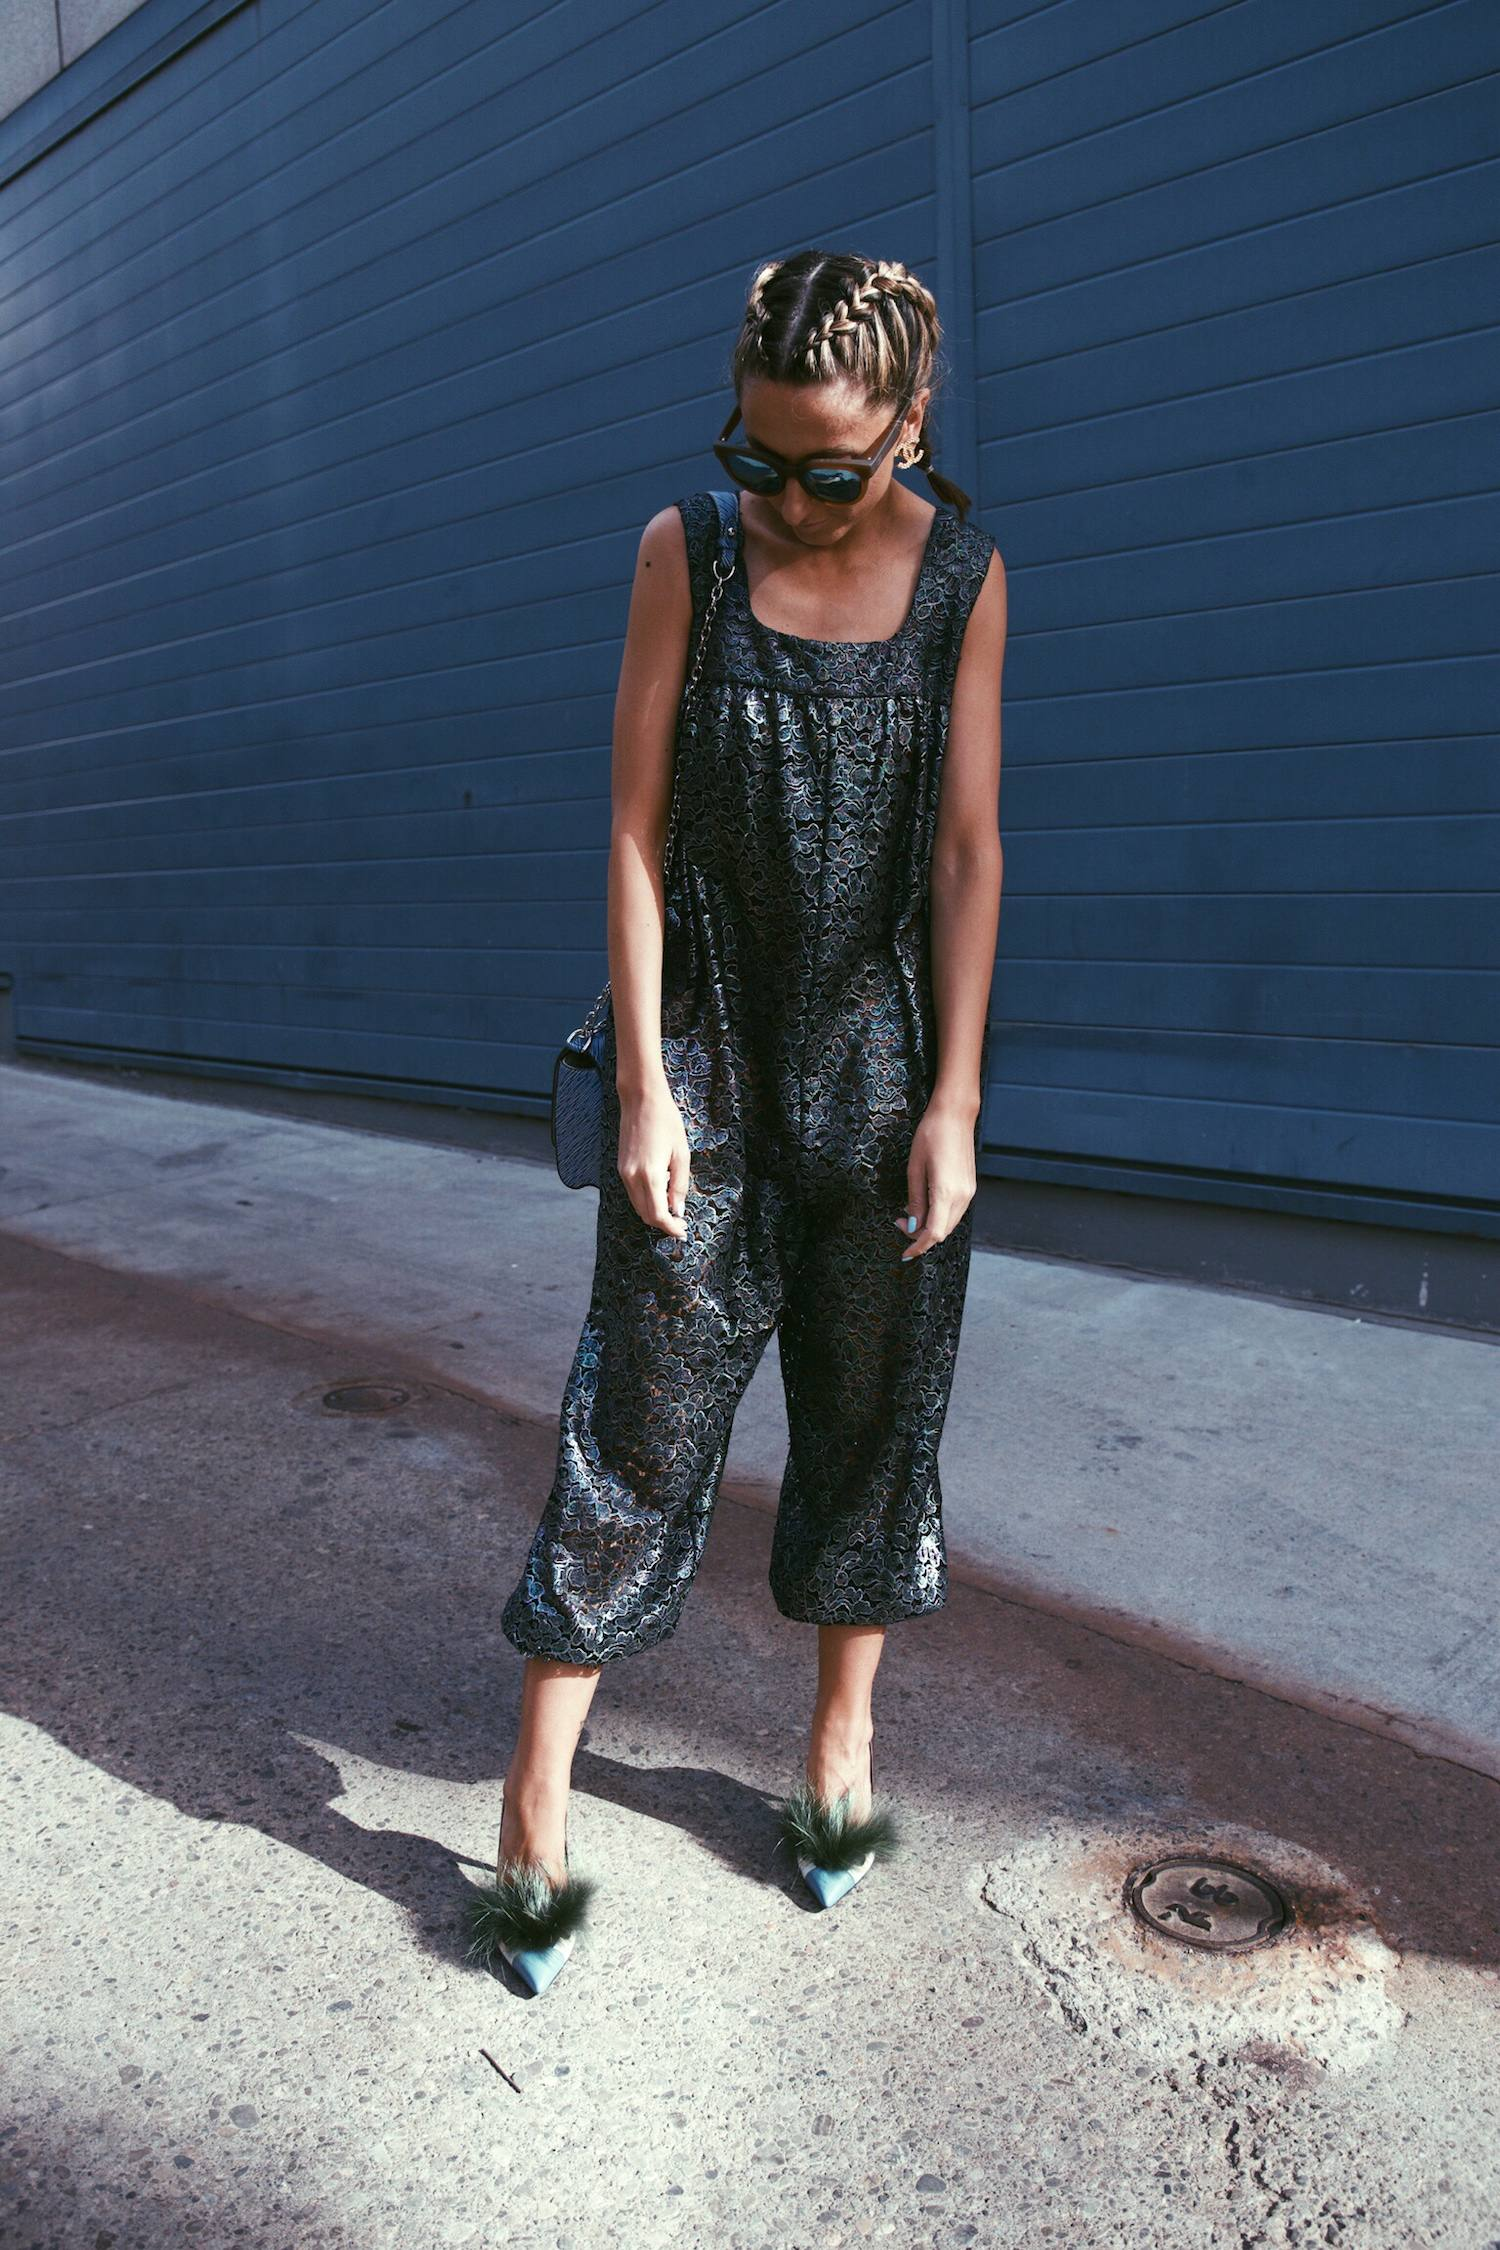 Chanel Jumpsuit, Fendi Bag Bug Shoes, Louis Vuitton Epi Leather Twist, Boxer Braids 07